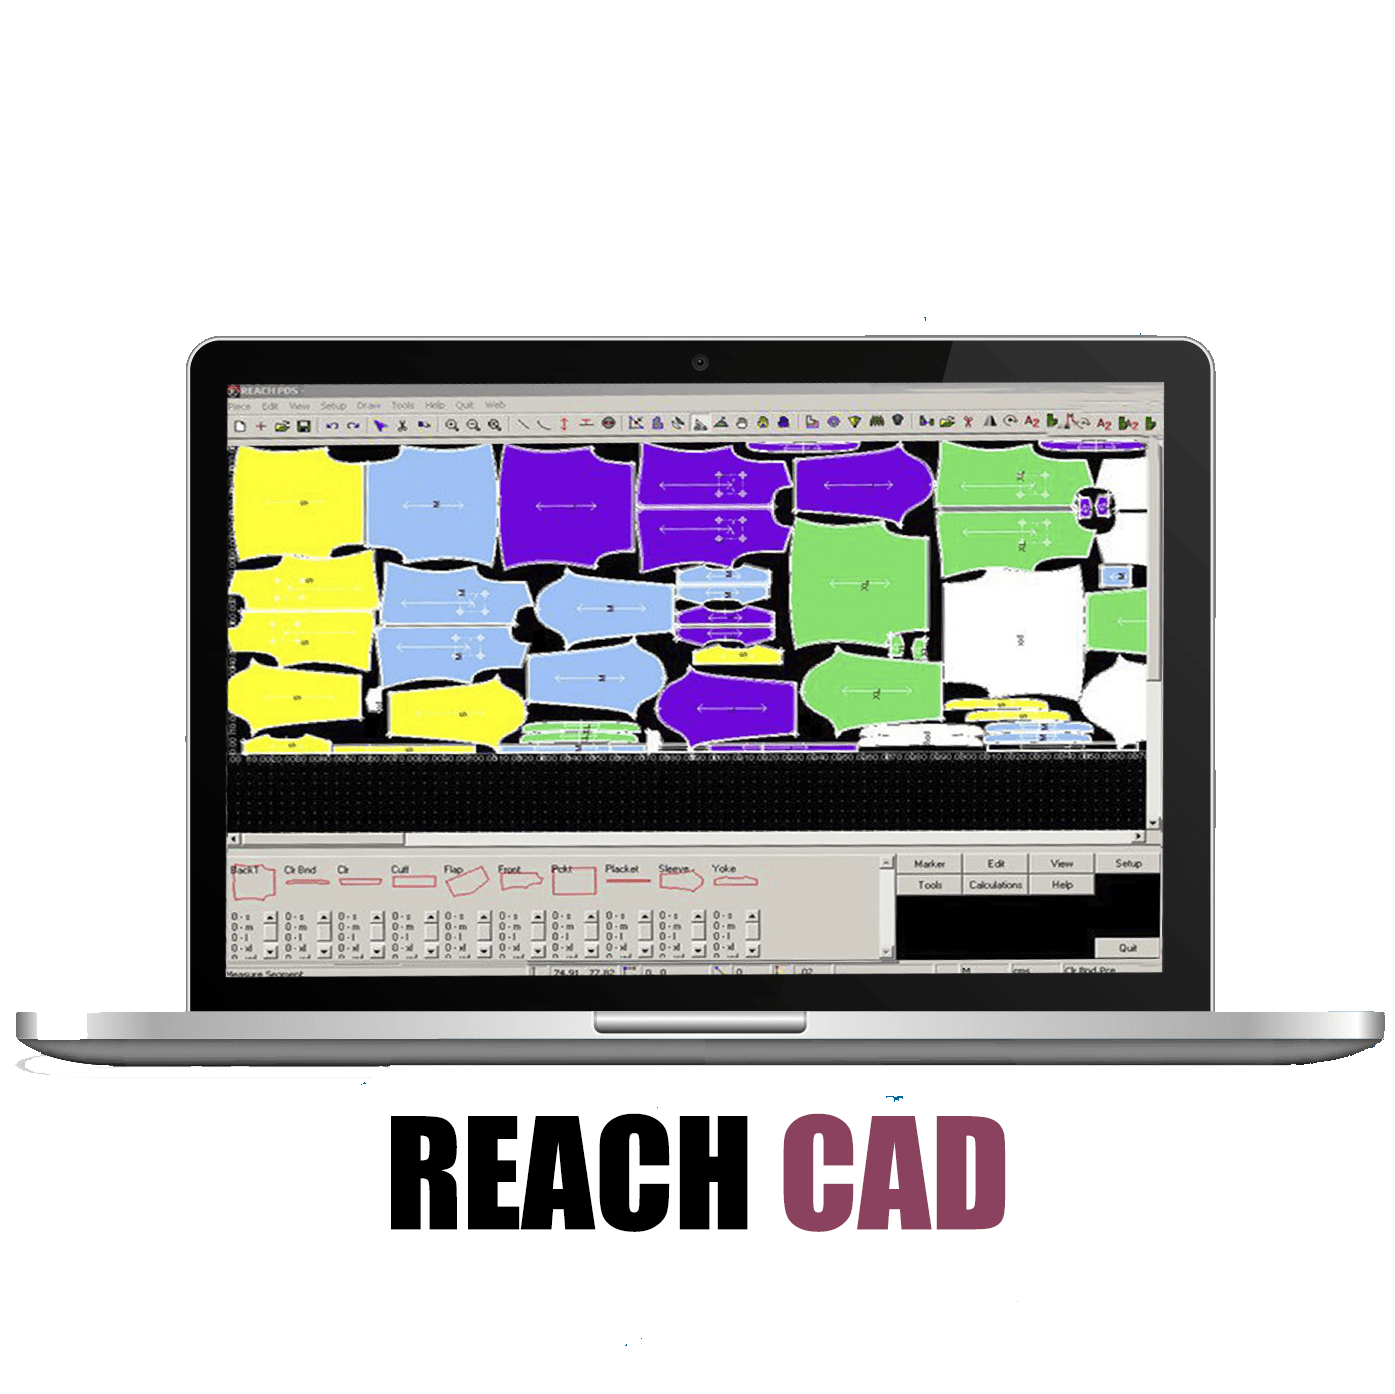 apparel-cad-software-reach-cad-1